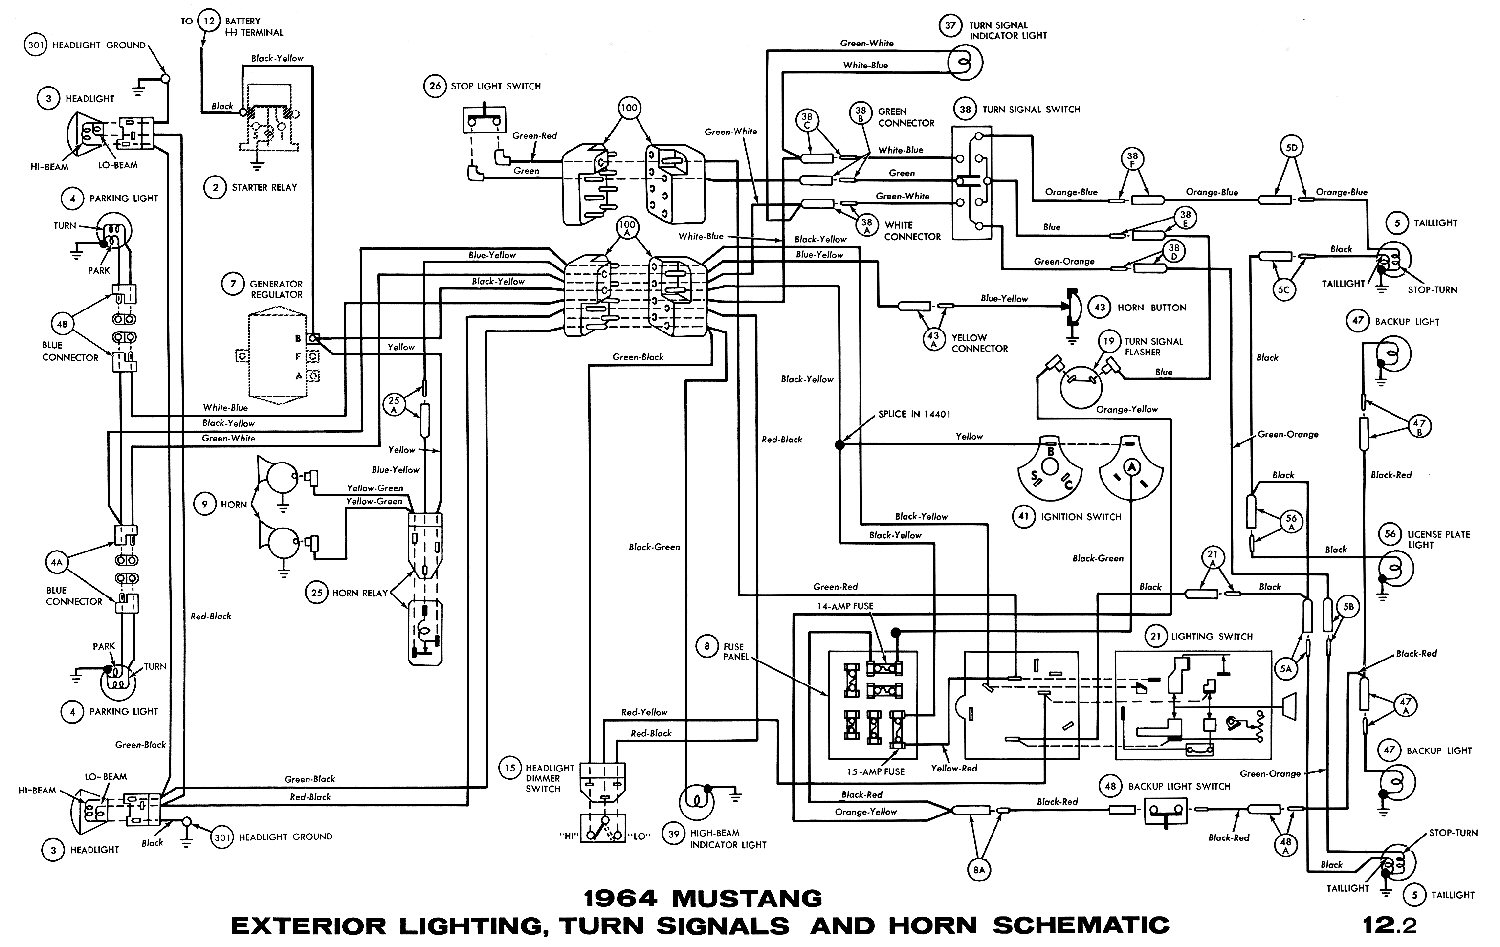 1964i 1964 mustang wiring diagrams average joe restoration Turn Signal Relay Wiring Diagram at mr168.co